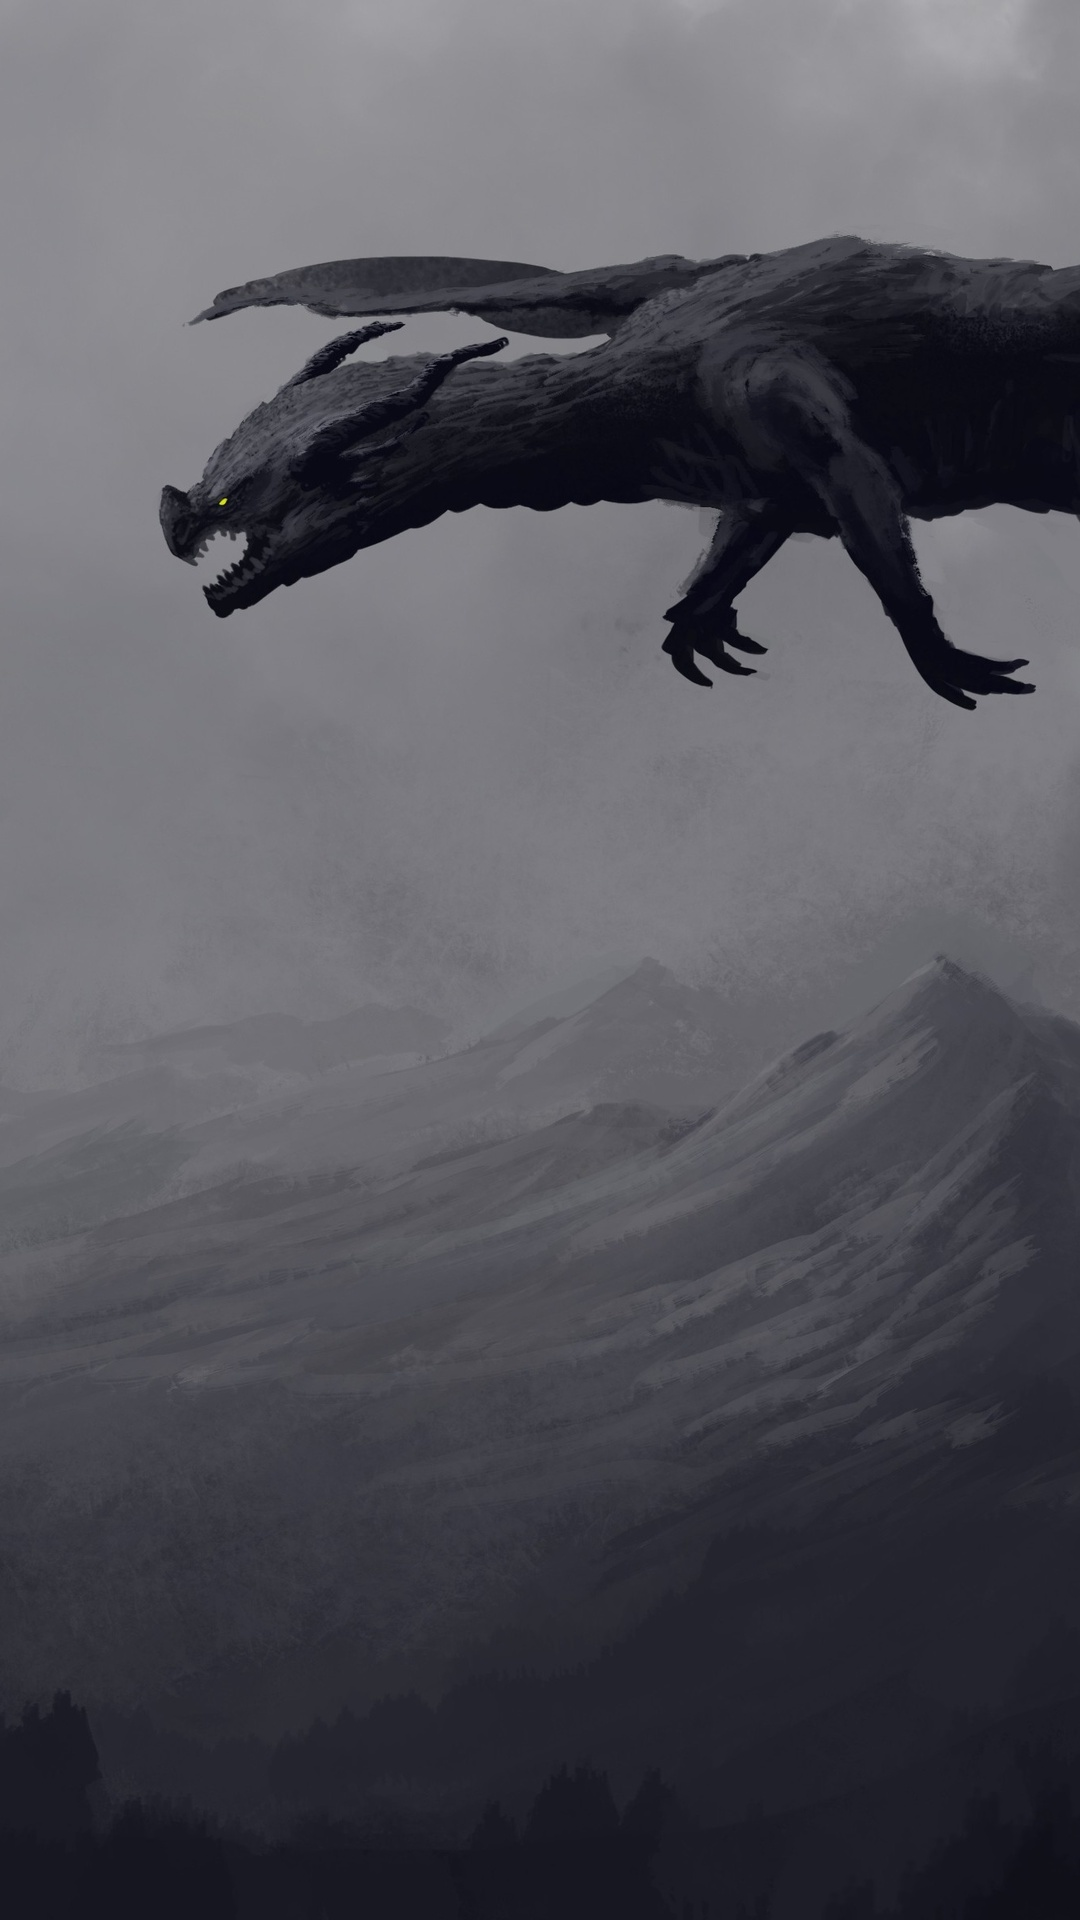 big-giant-black-dragon-4k-yy.jpg